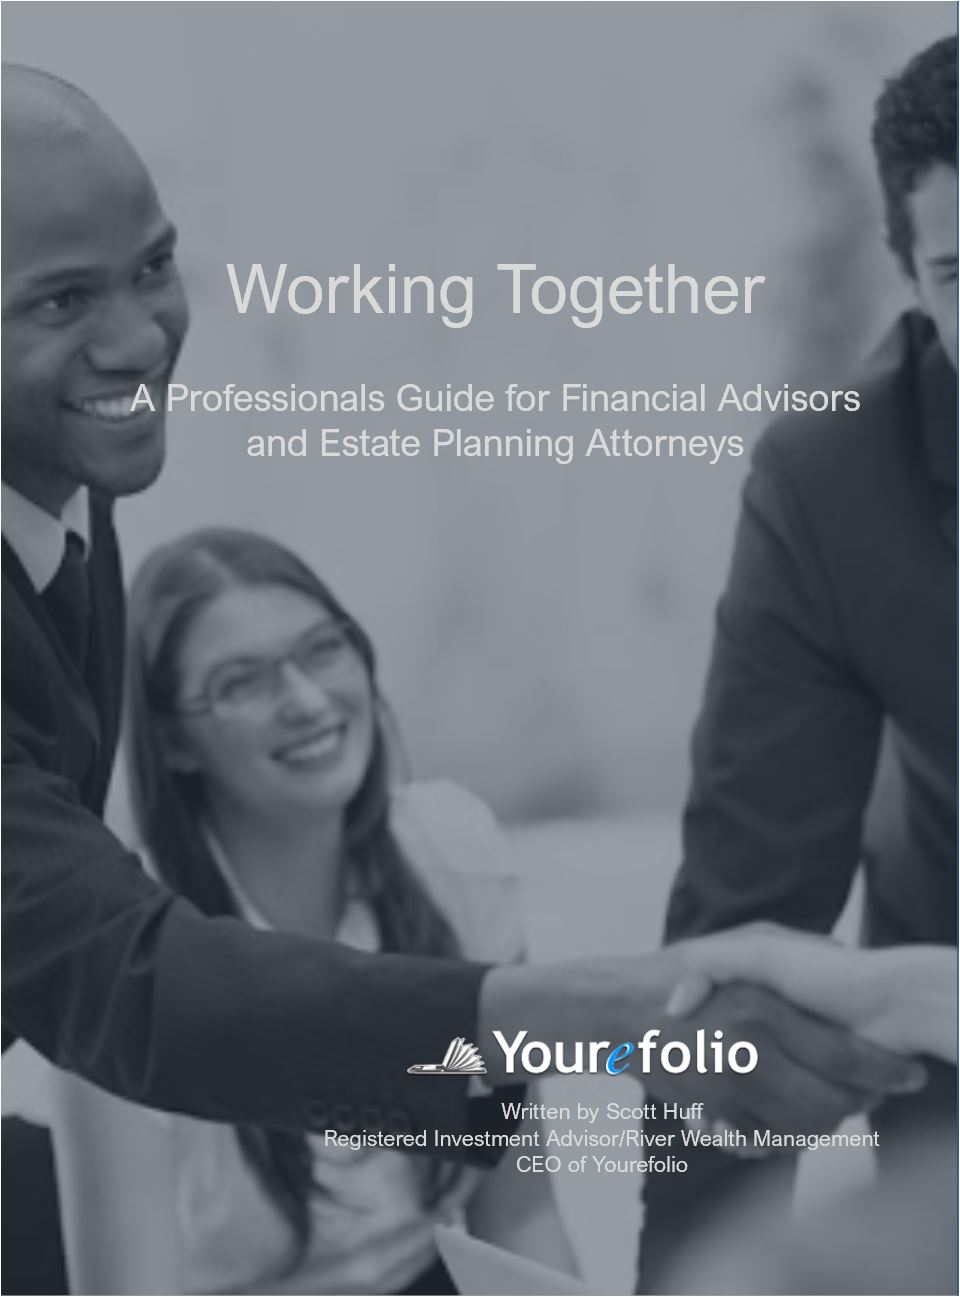 Financial Advisors and Estate Planning Attorneys Guide to Working Together